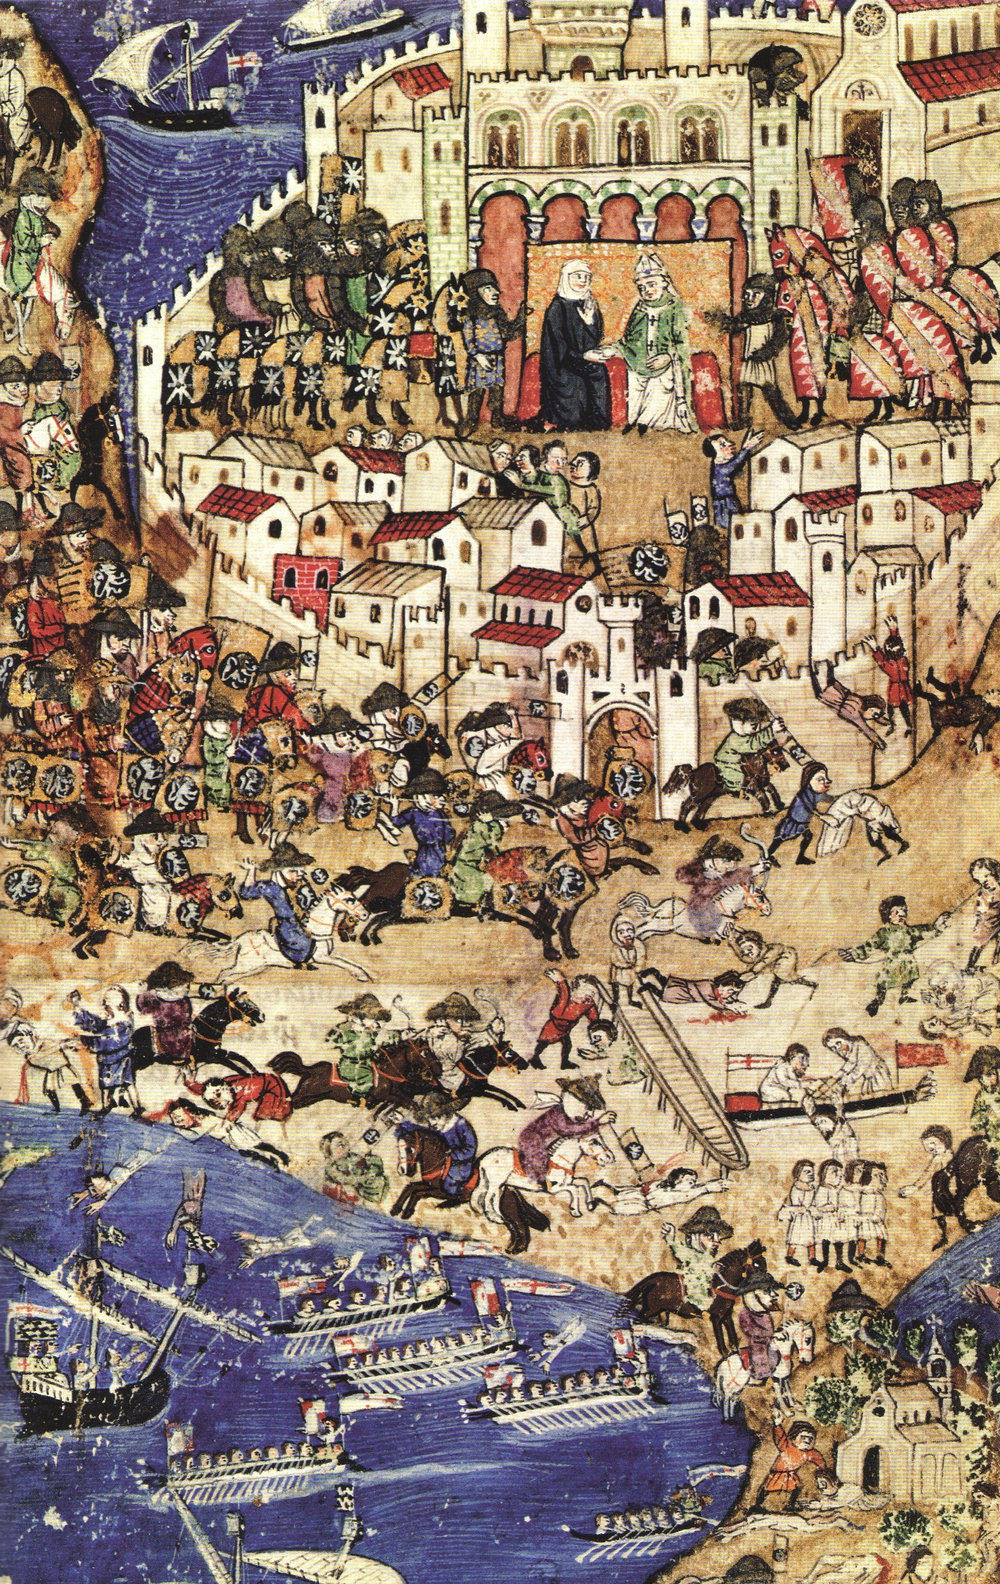 Fall of Tripoli [The fall of Tripoli to the Mamluks, April 1289.]. (2007, December 15). Retrieved from https://en.wikipedia.org/wiki/Mamluk. Public Domain License.